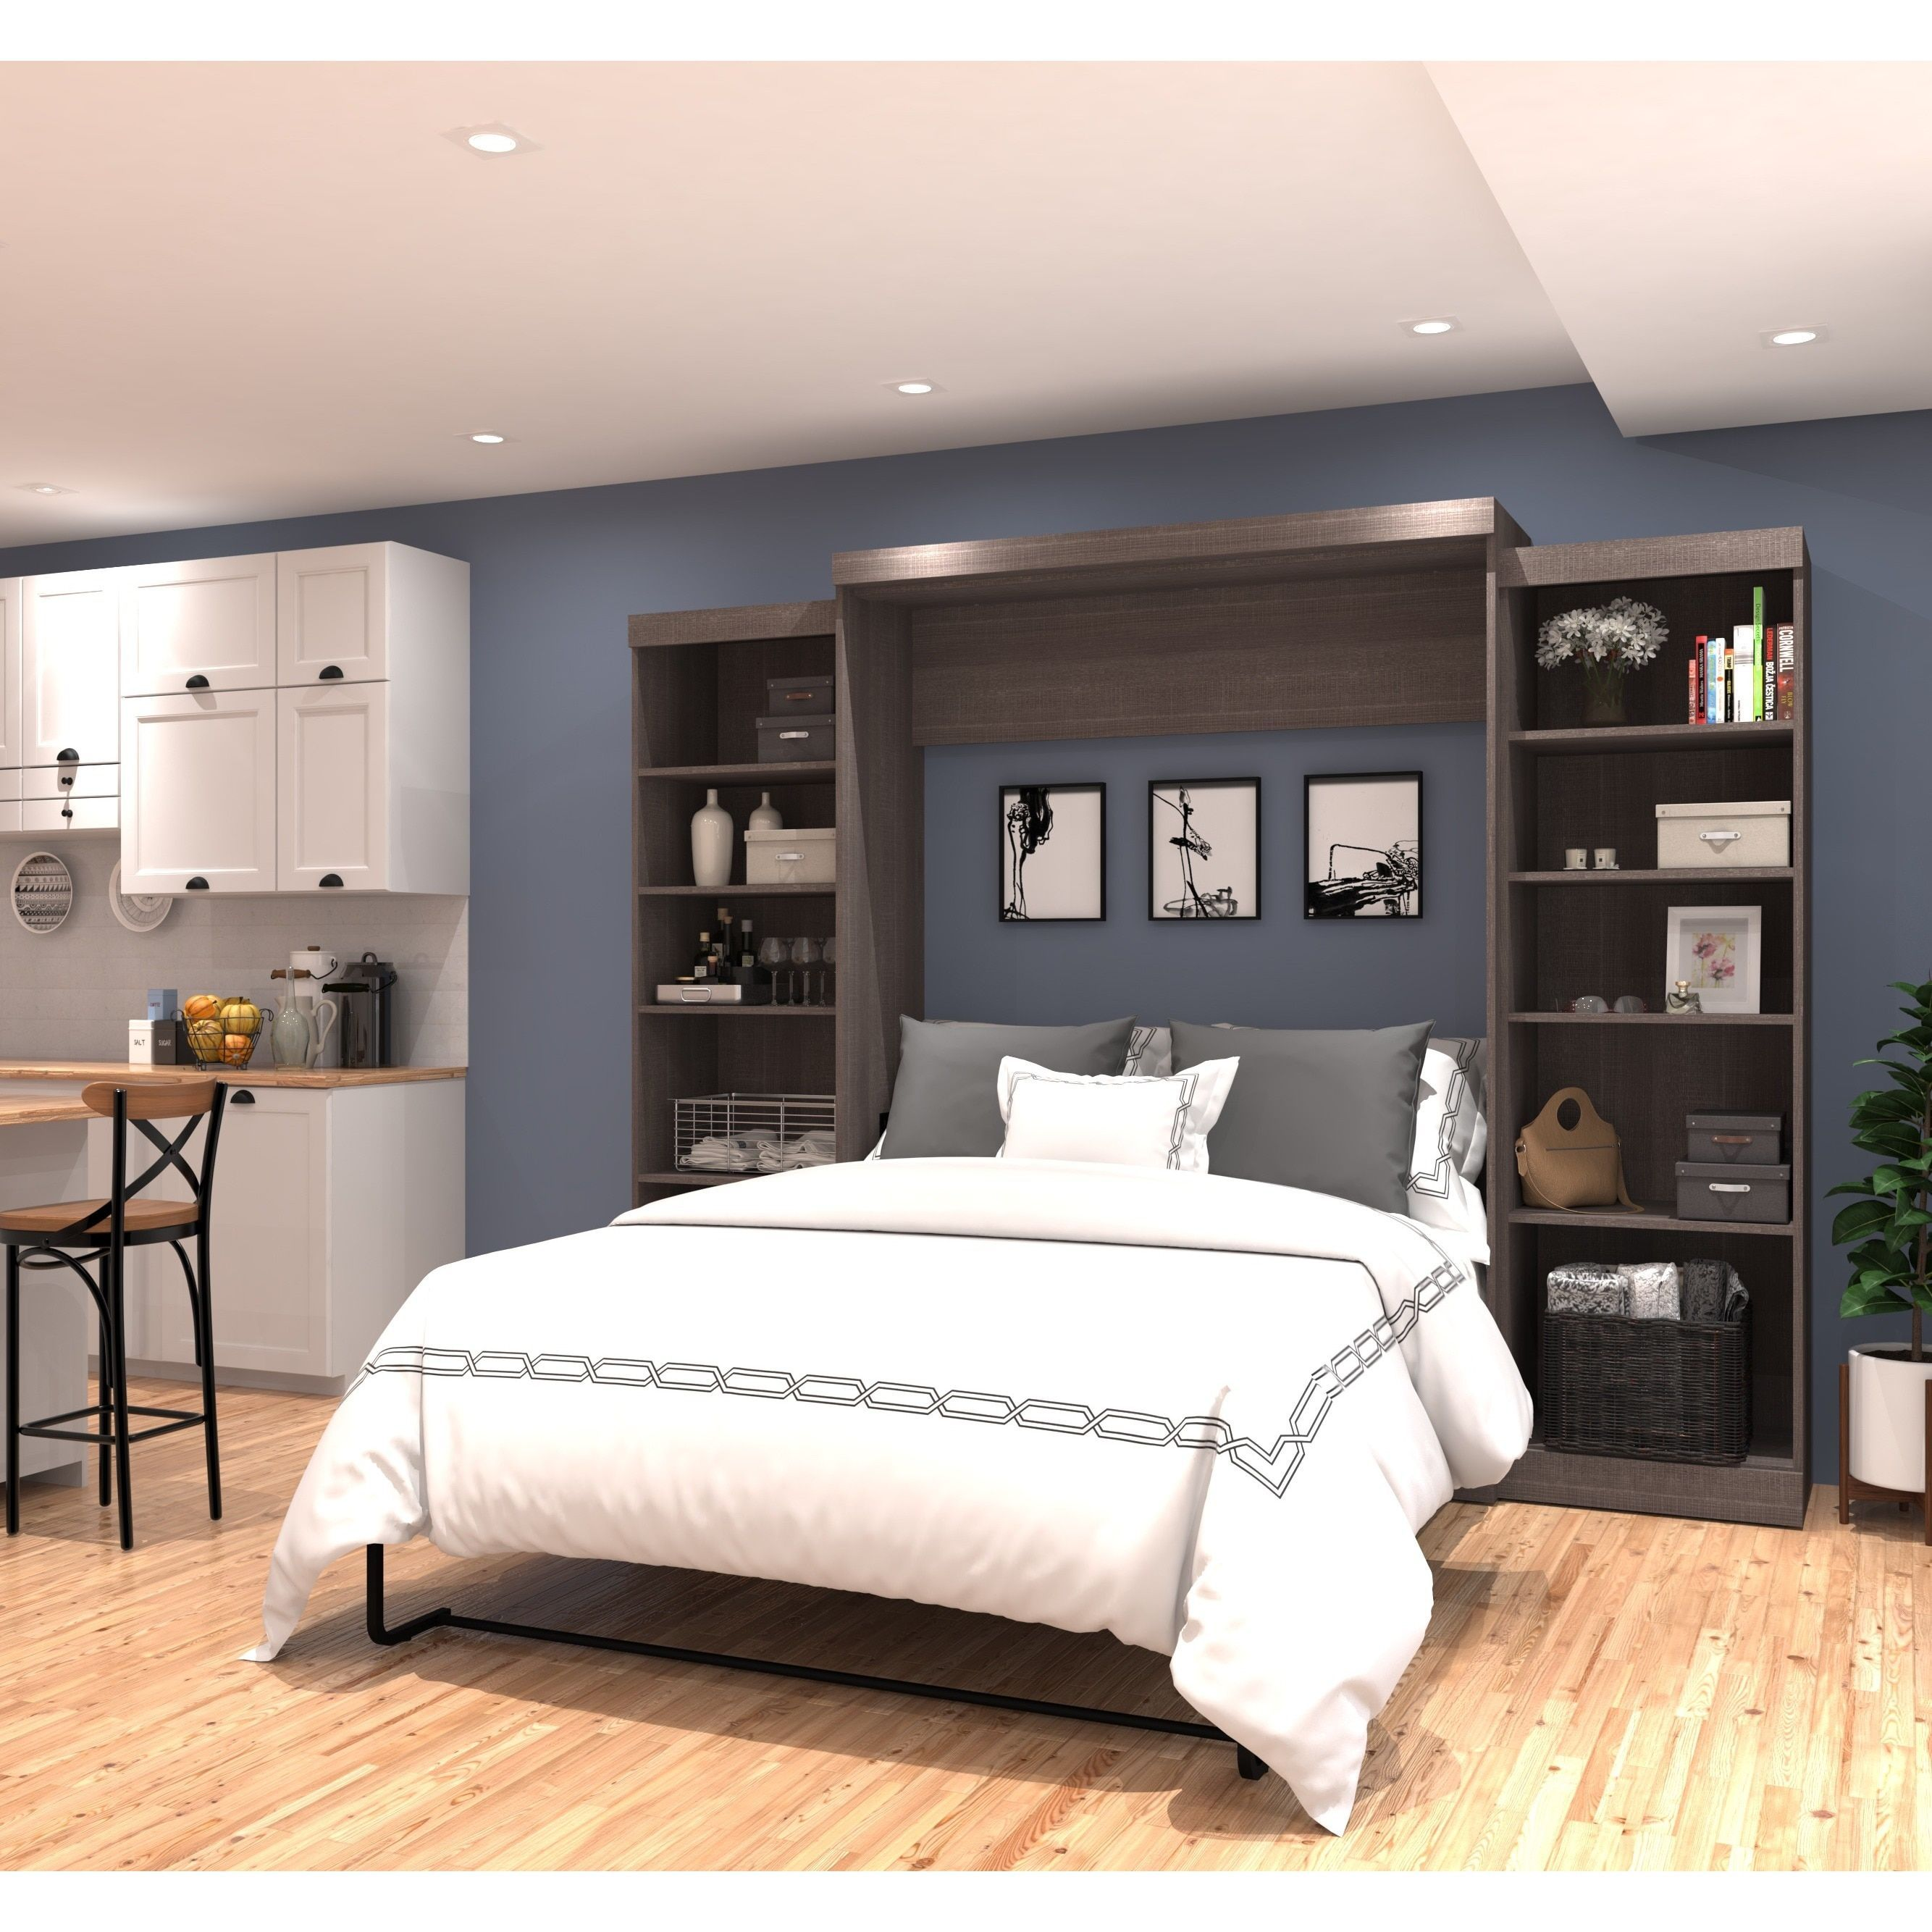 """Pur by Bestar 115"""" Queen Wall bed kit in 2019 Murphy bed"""